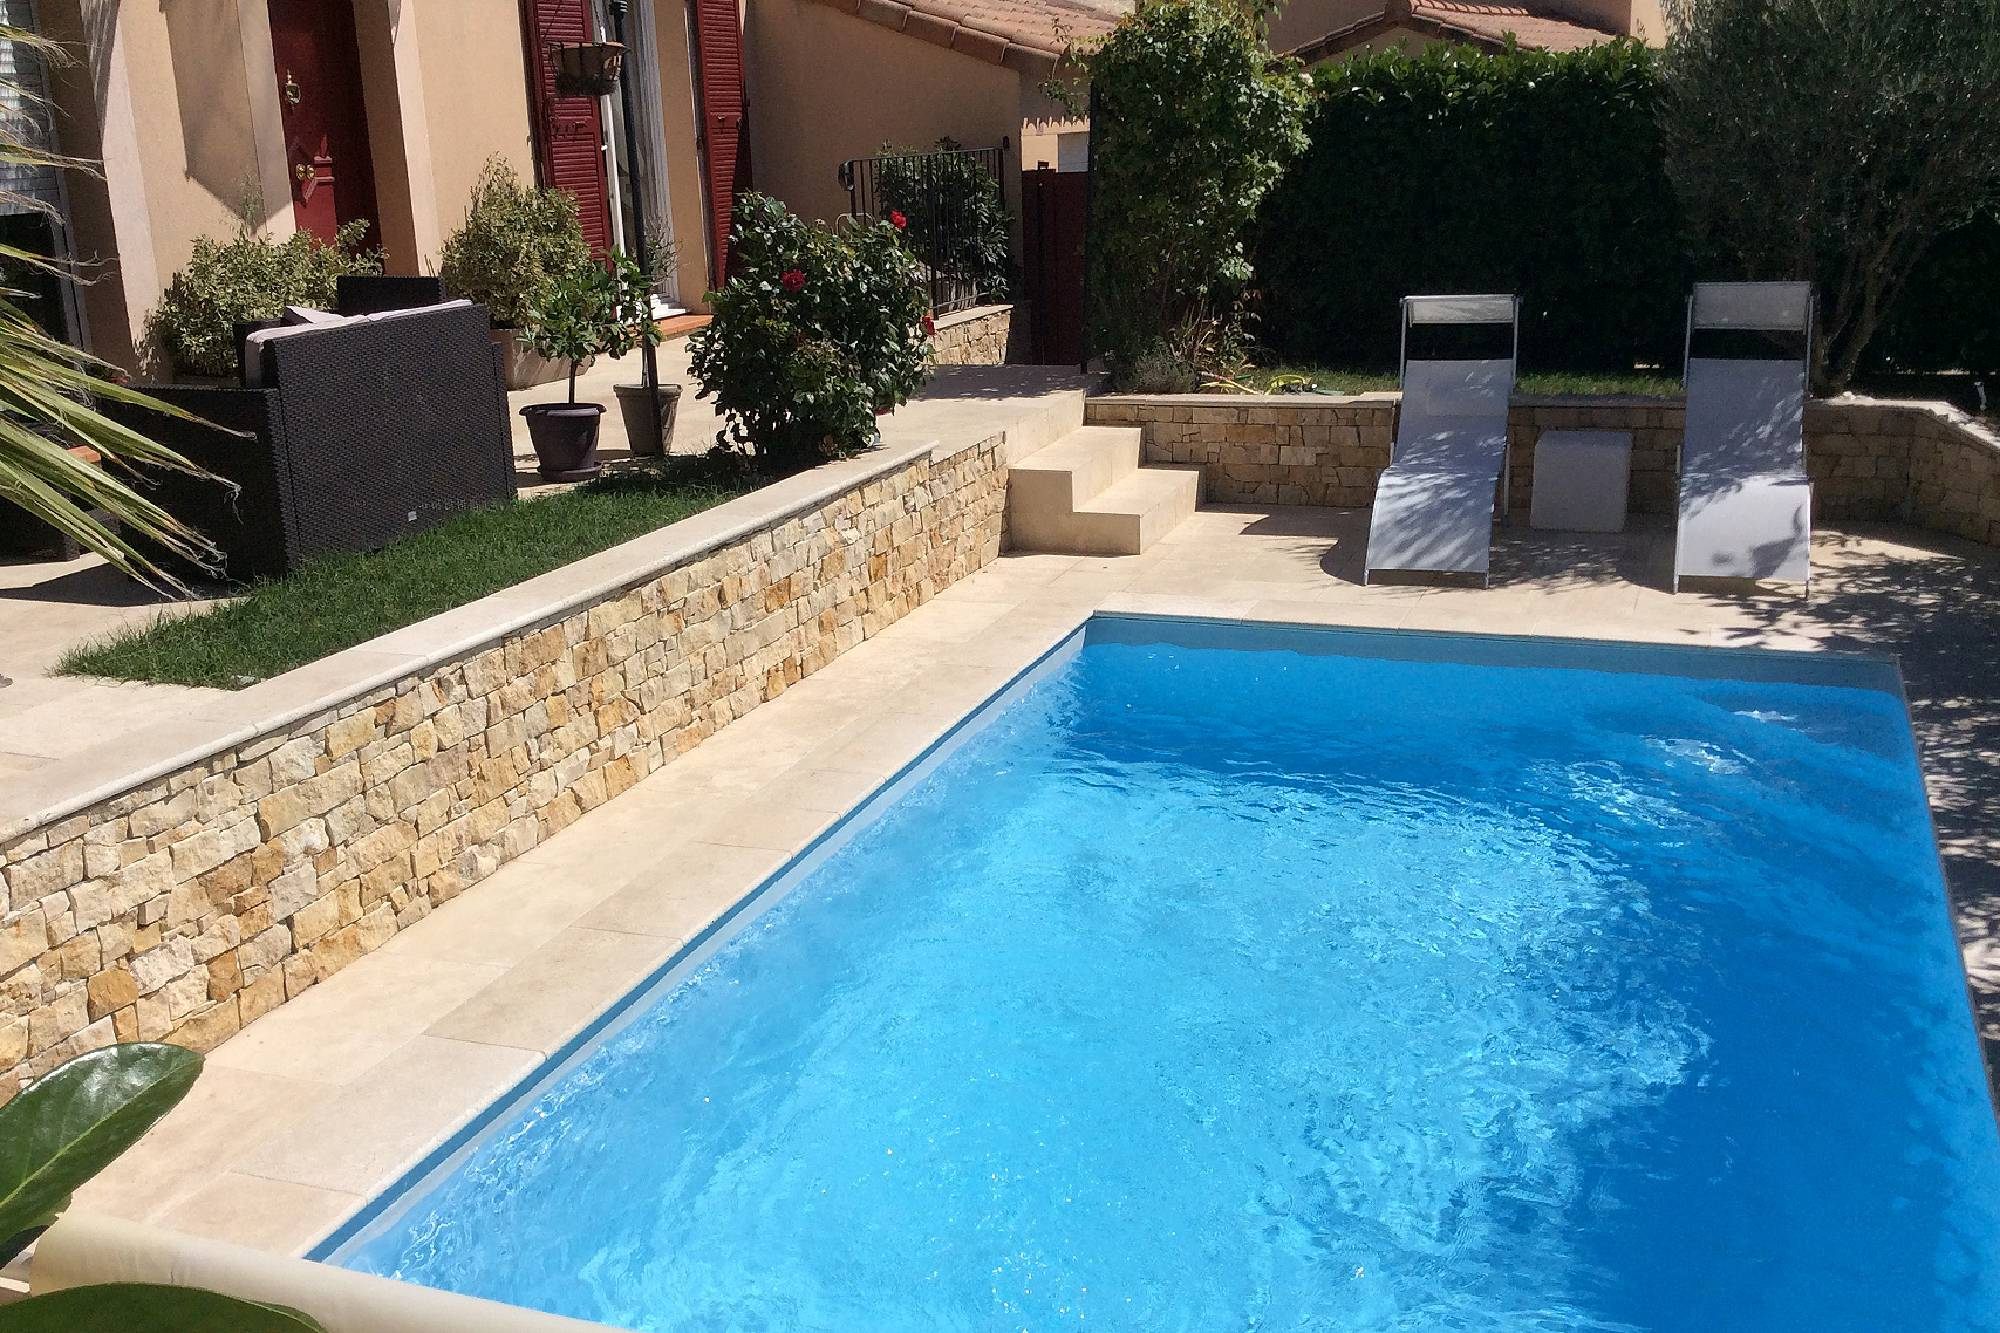 Concessionnaire piscines desjoyaux aubagne for Photo piscine